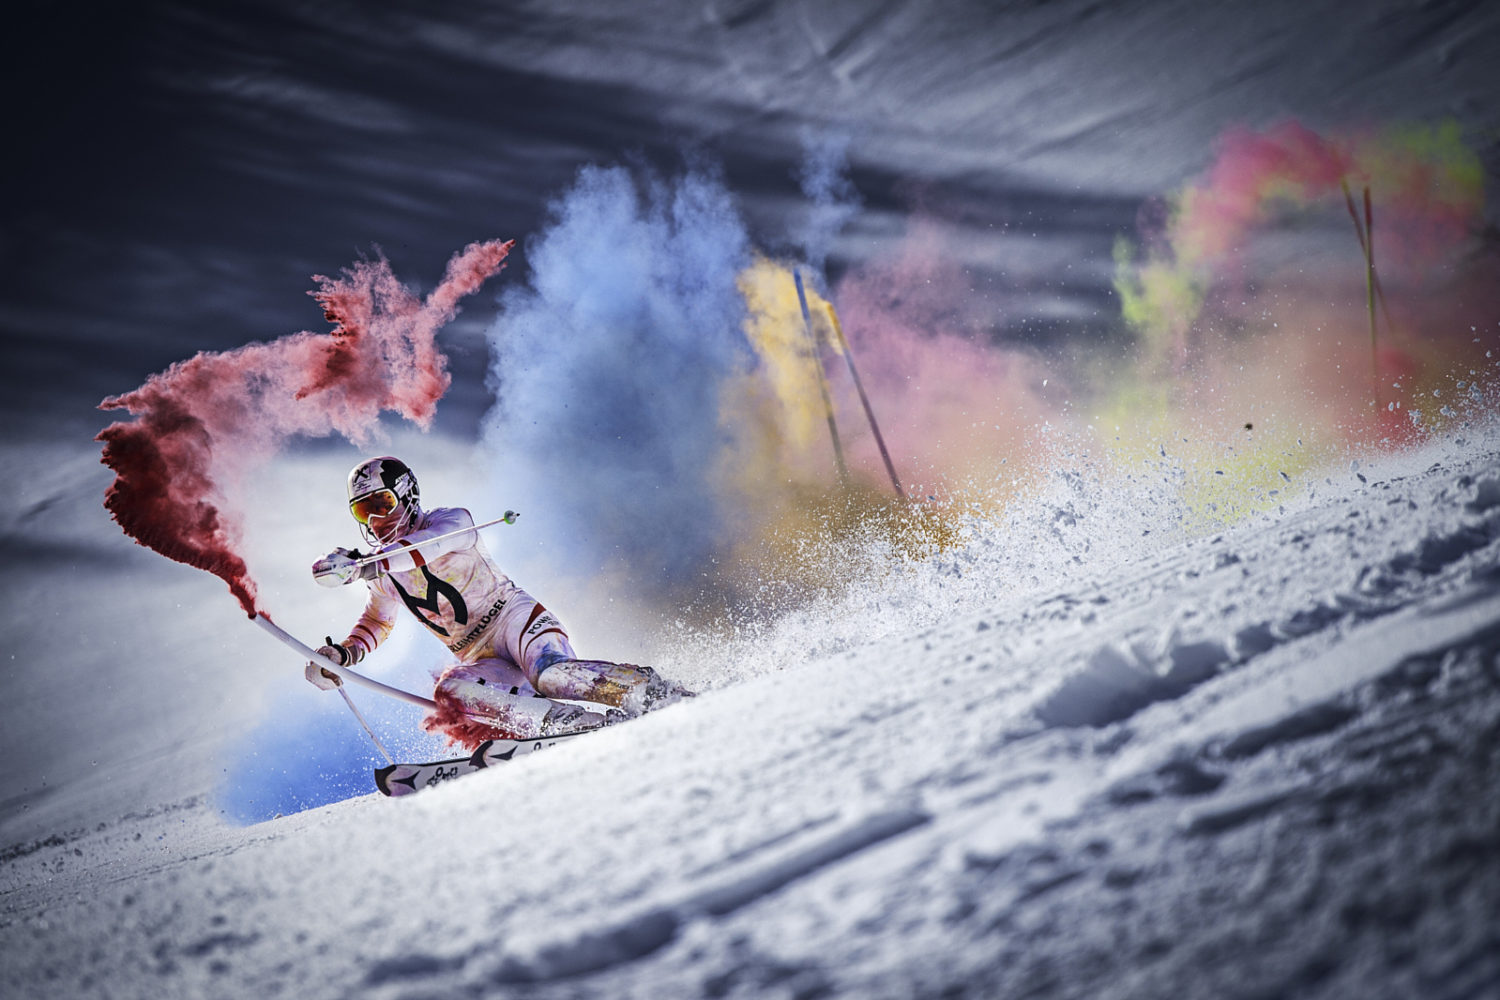 20+ Smokin' Photos of Sports in Action